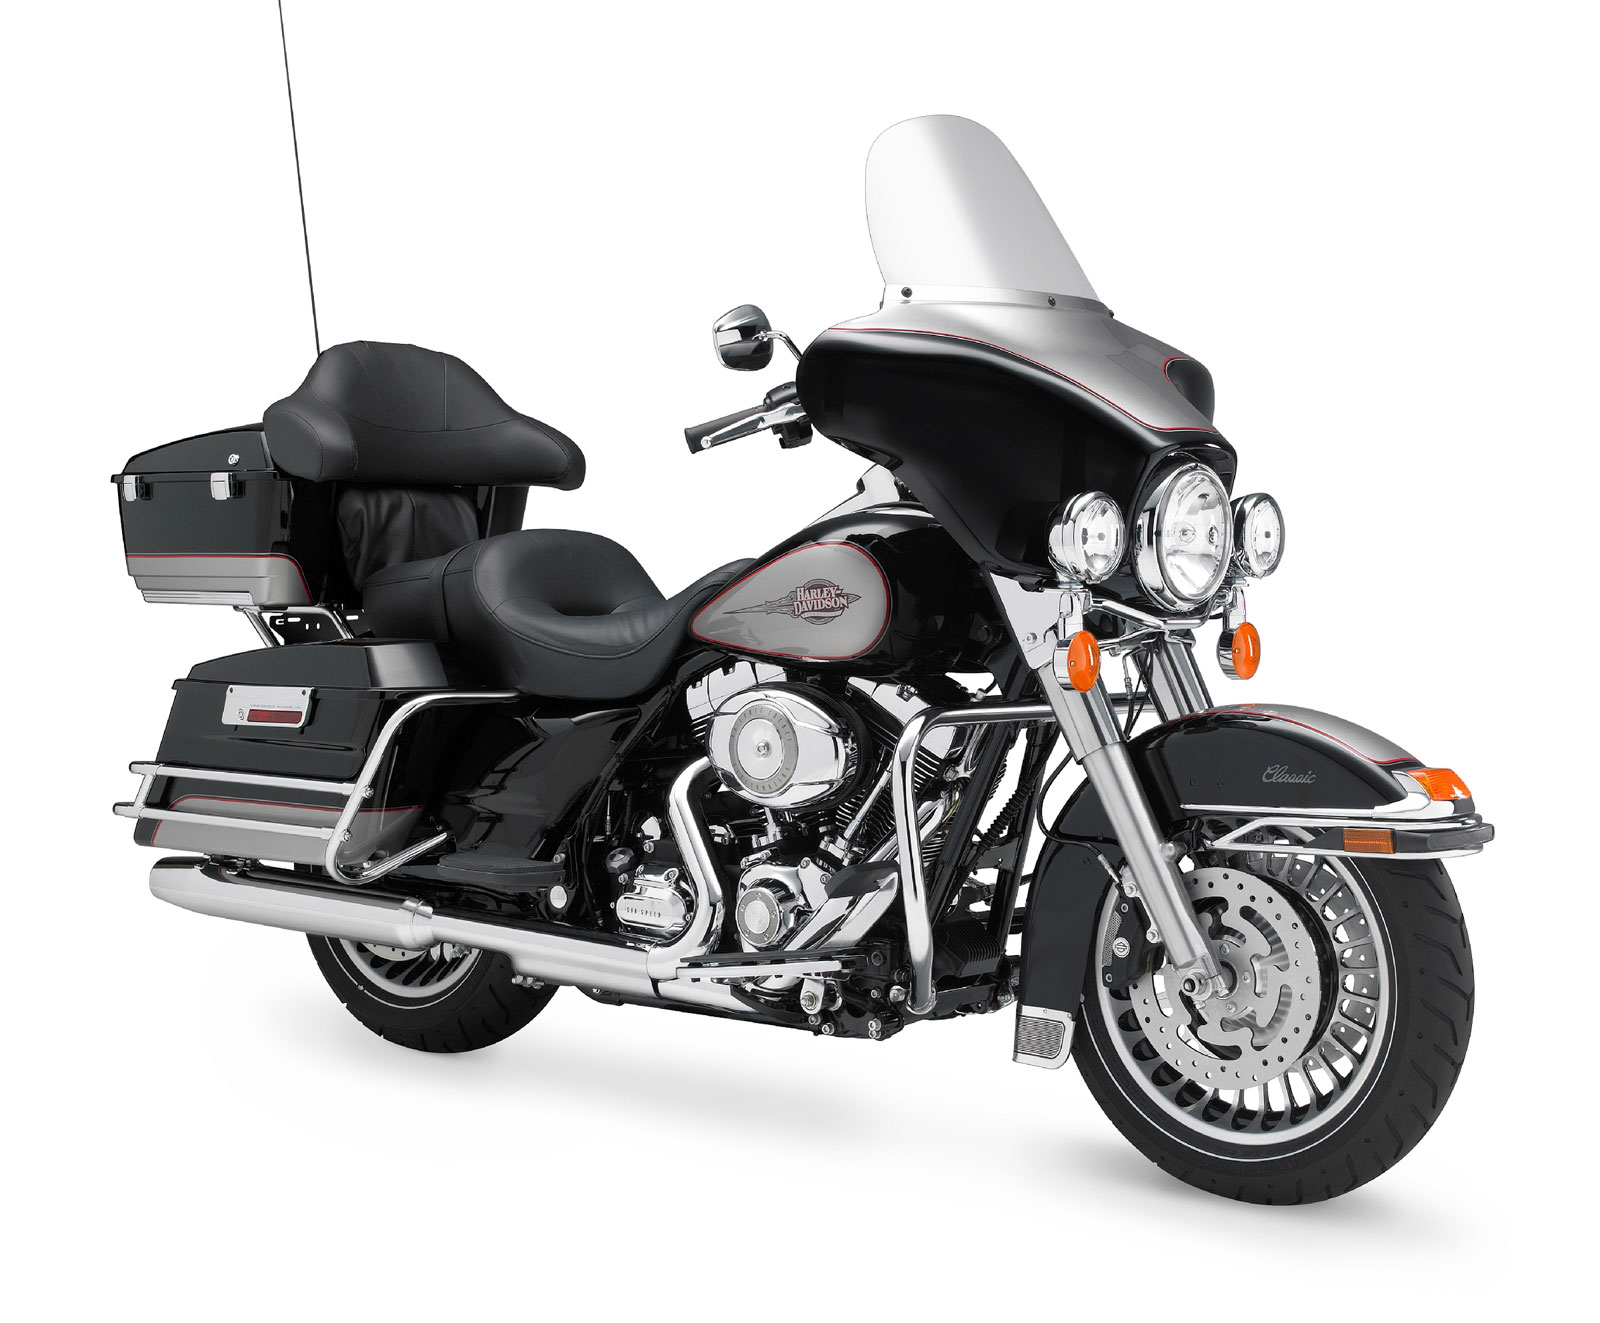 Harley-Davidson FLHTC Electra Glide Classic 2007 #6